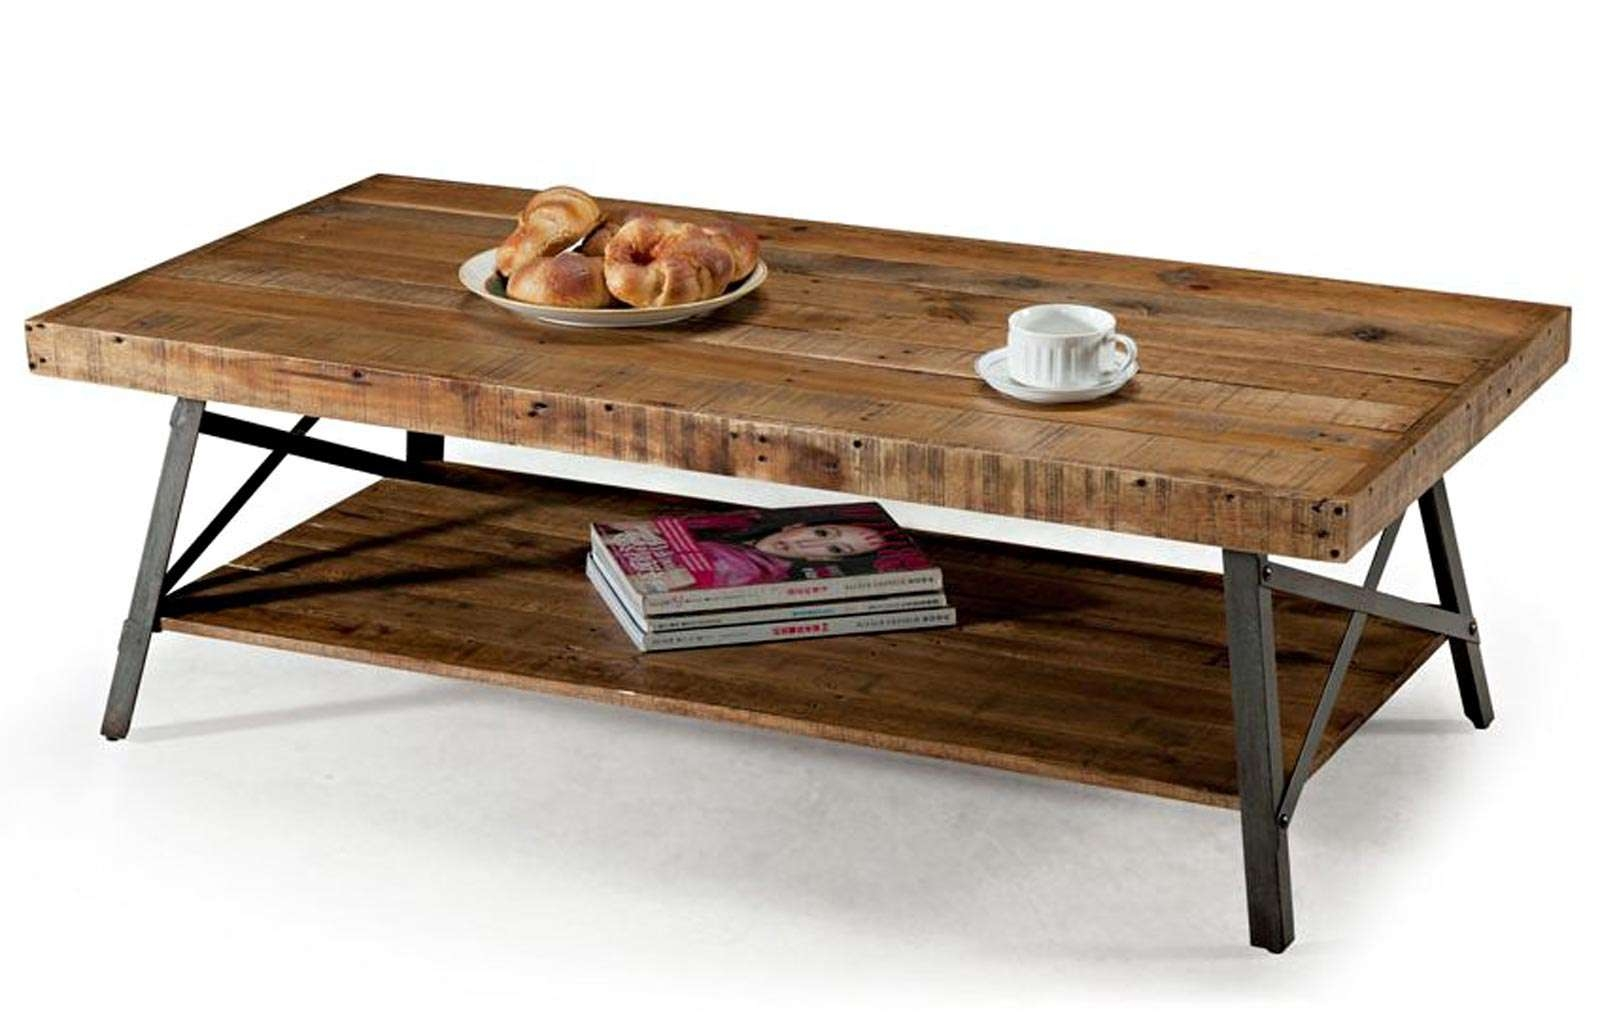 Ultimate Wood Metal Coffee Table Also Interior Home Inspiration In Latest Wood And Steel Coffee Table (View 19 of 20)